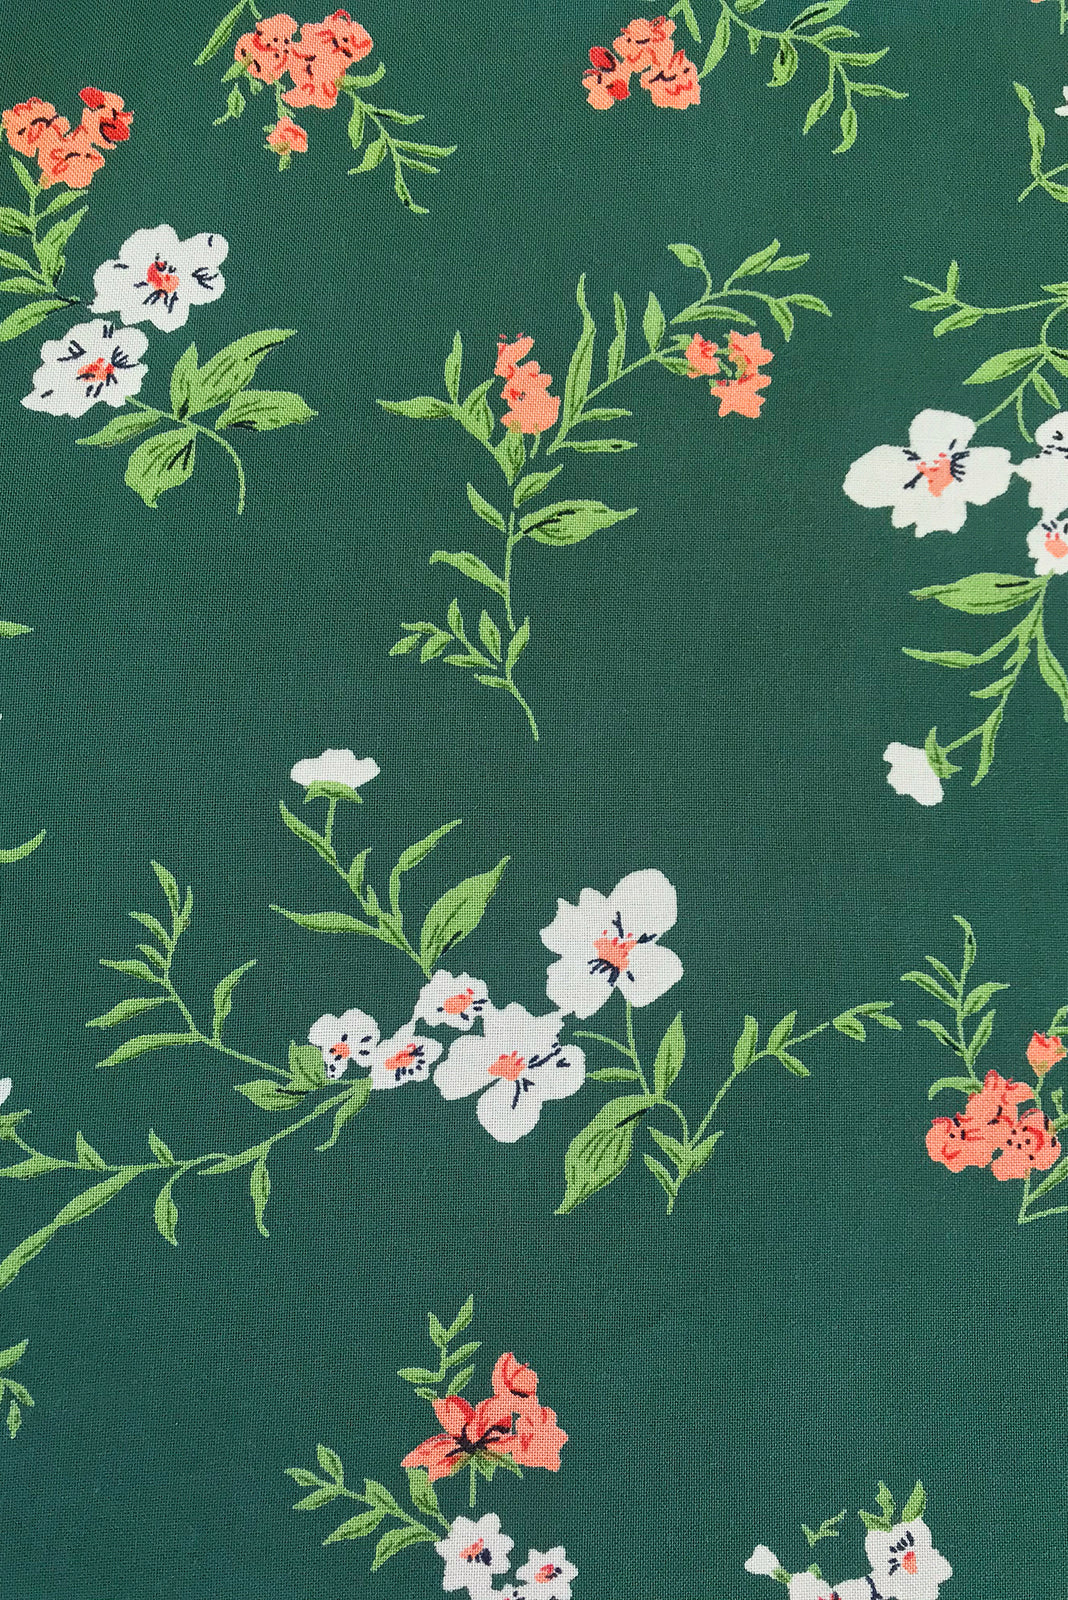 Fabric swatch of  Lizzie Green Gables Dress featuring 100% rayon in muted green base with vintage inspired floral print.